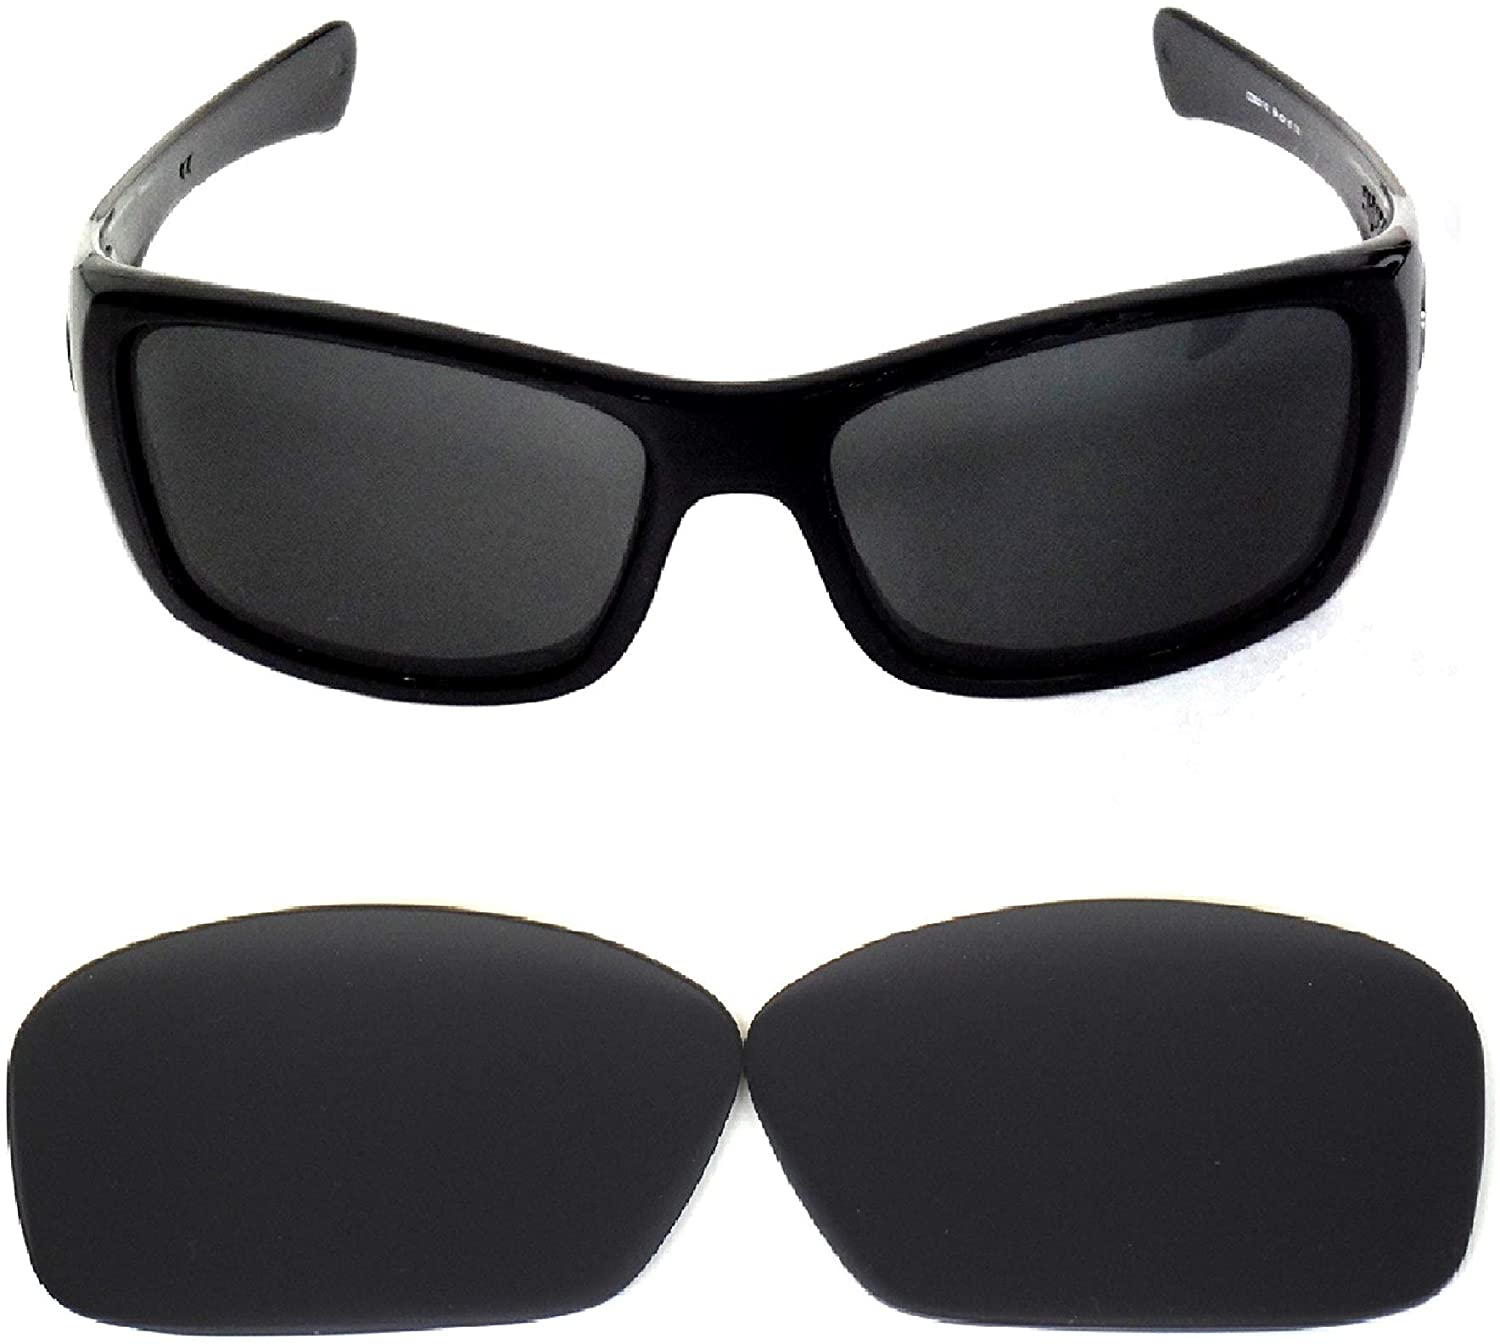 Galaxy Replacement Lenses for Oakley Hijinx Sunglasses Black Color Polarized,